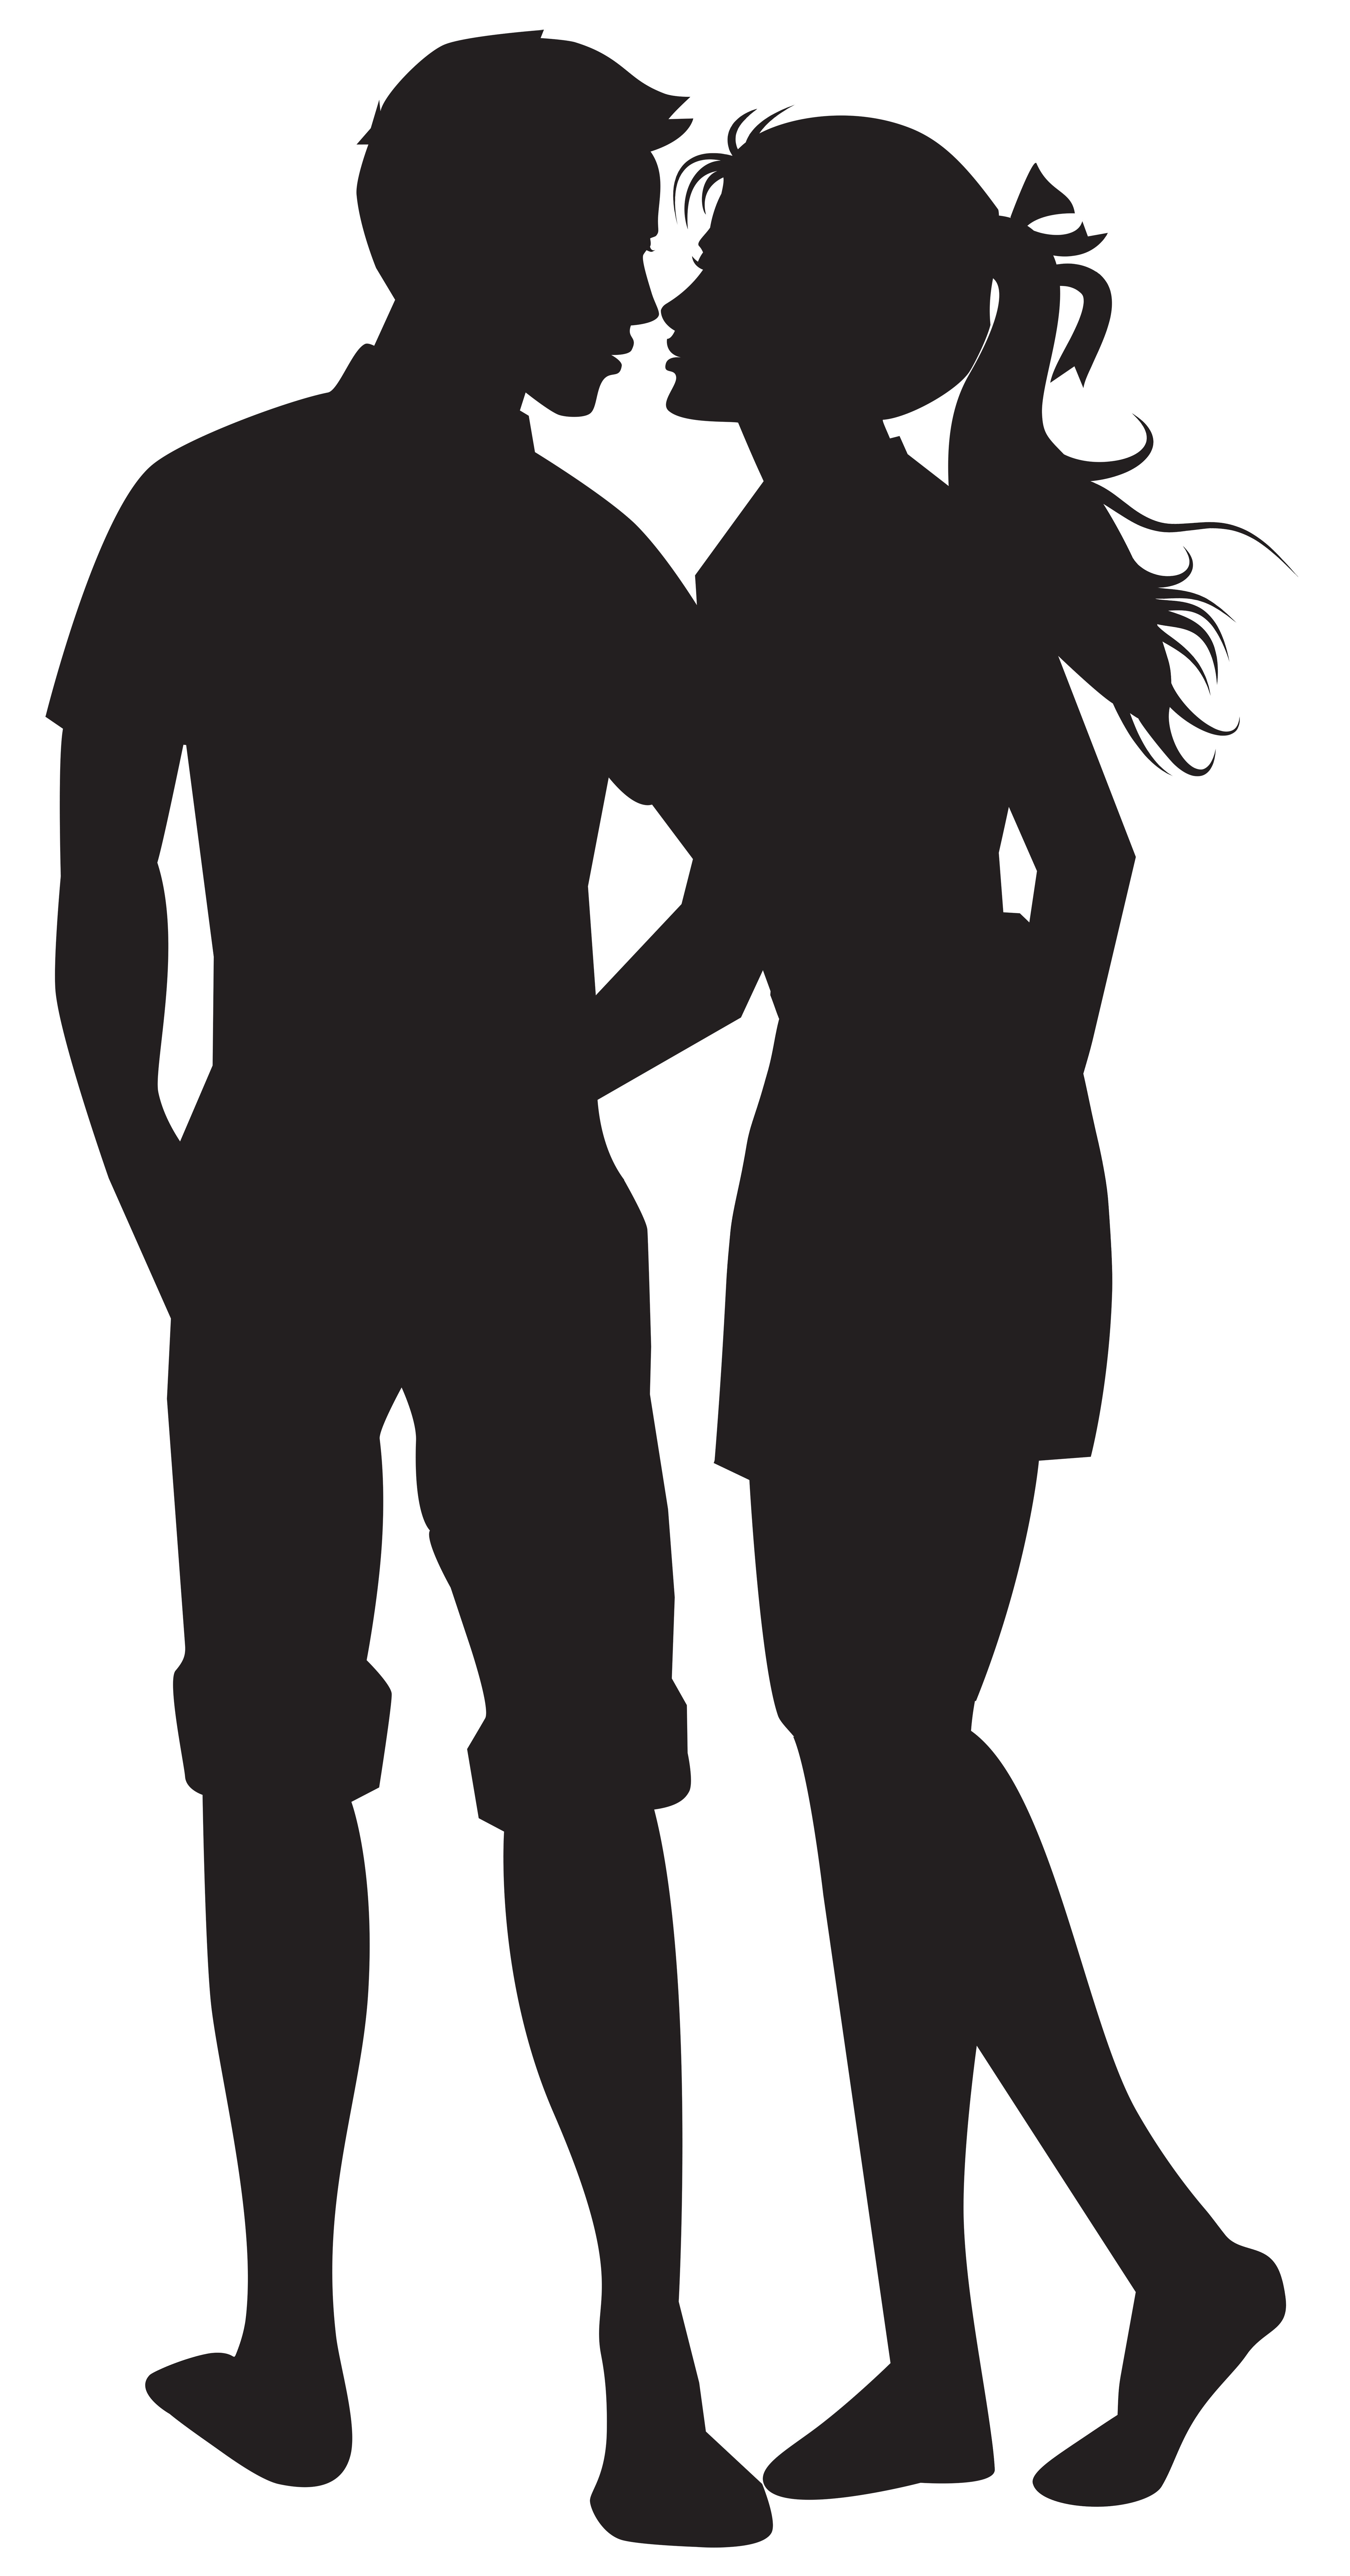 Couple clipart #1, Download drawings